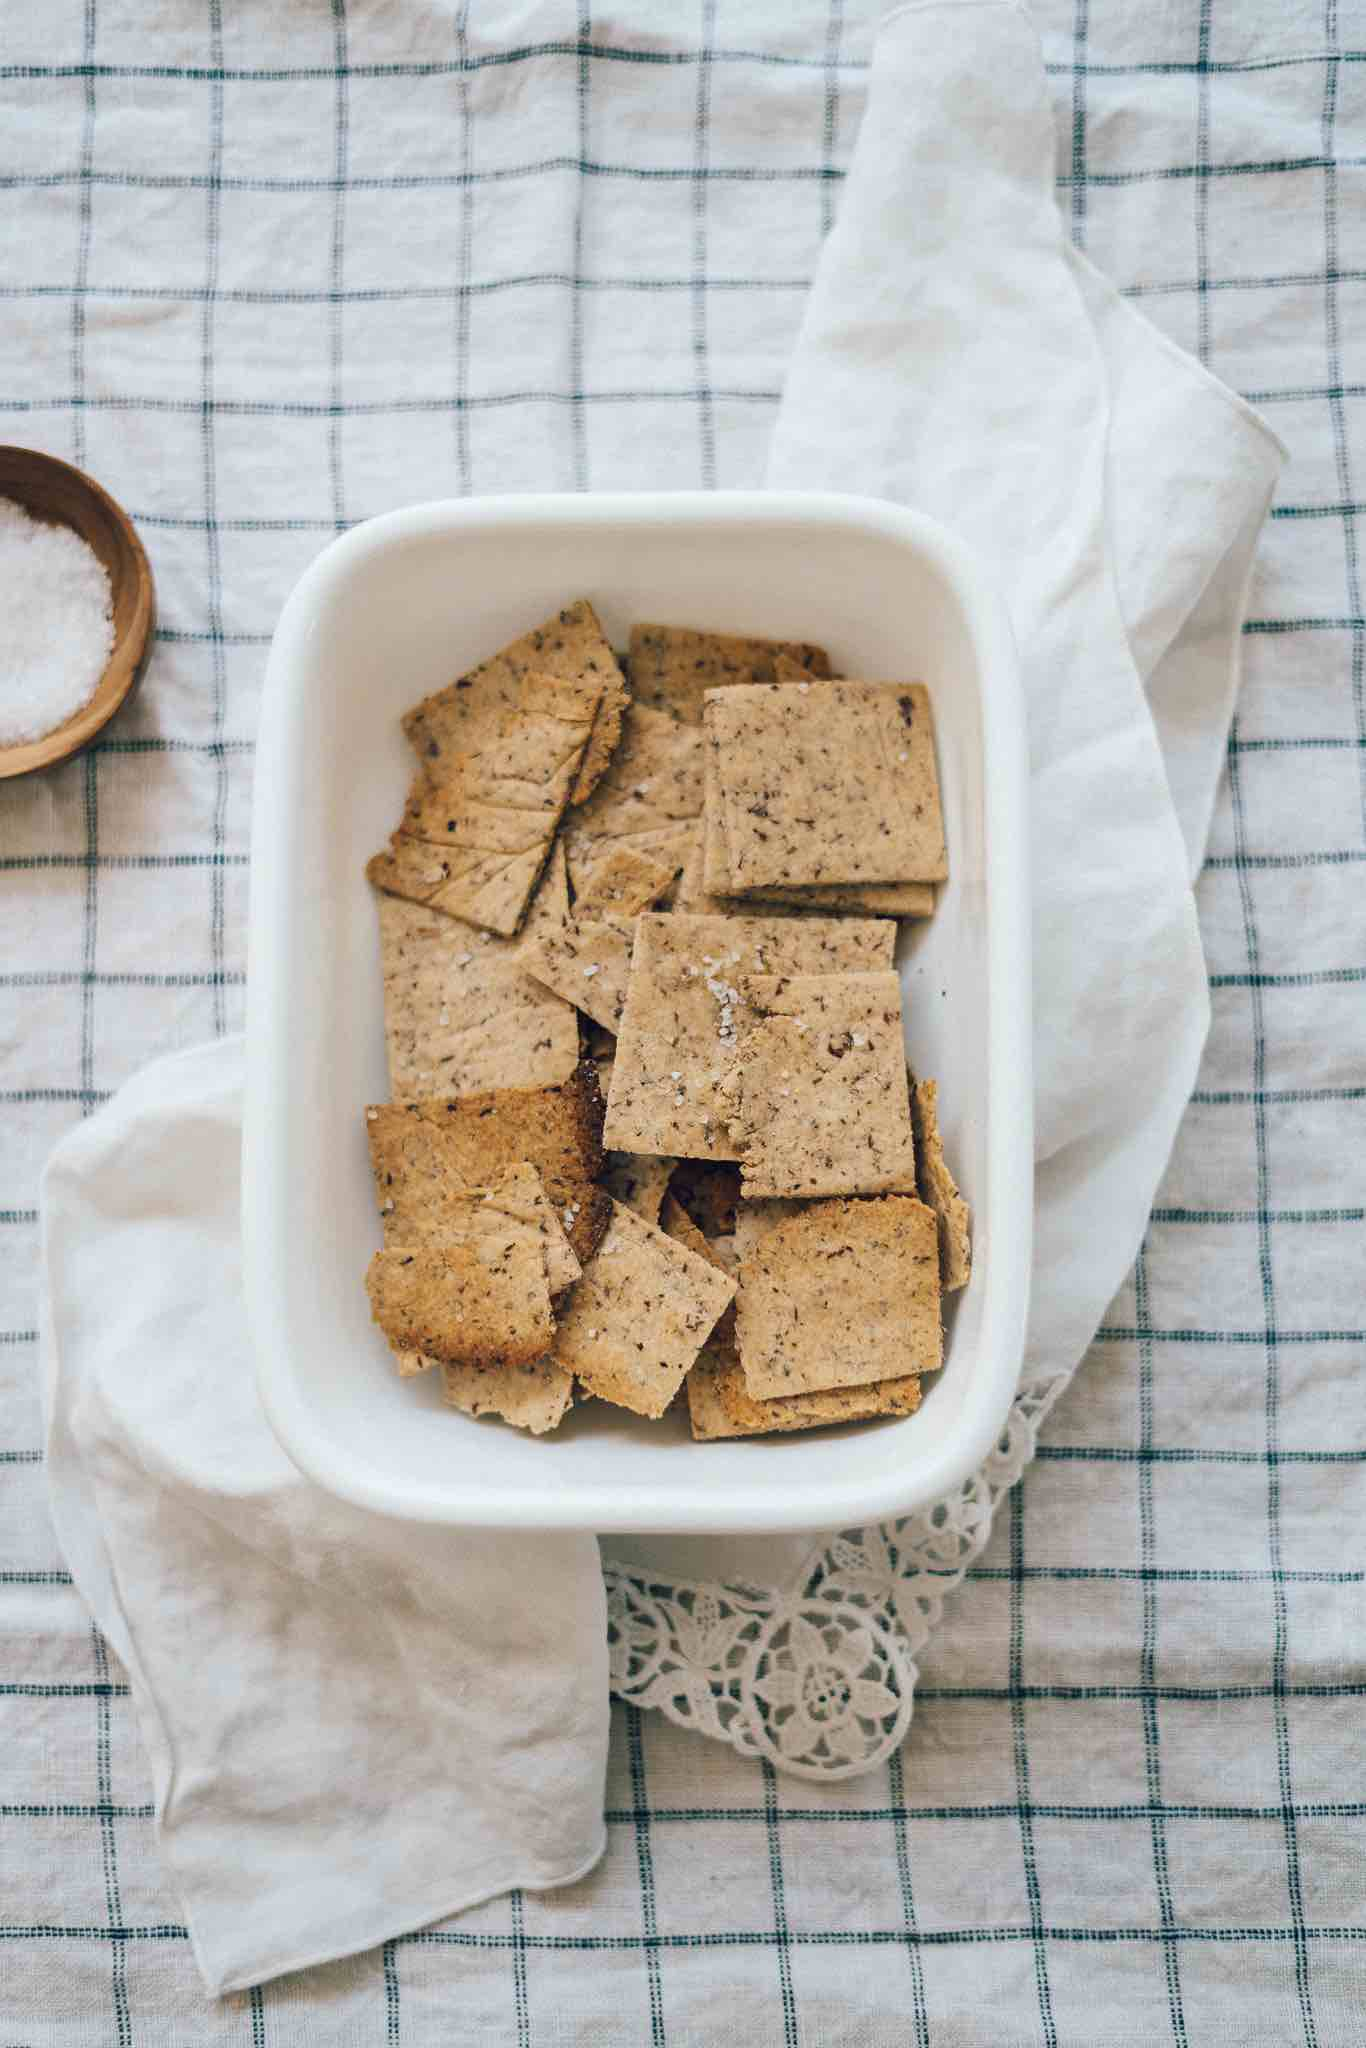 Homemade Gluten Free Crackers Recipe (Easy To Make) - Whole Grain Crackers - No Gums or Starches